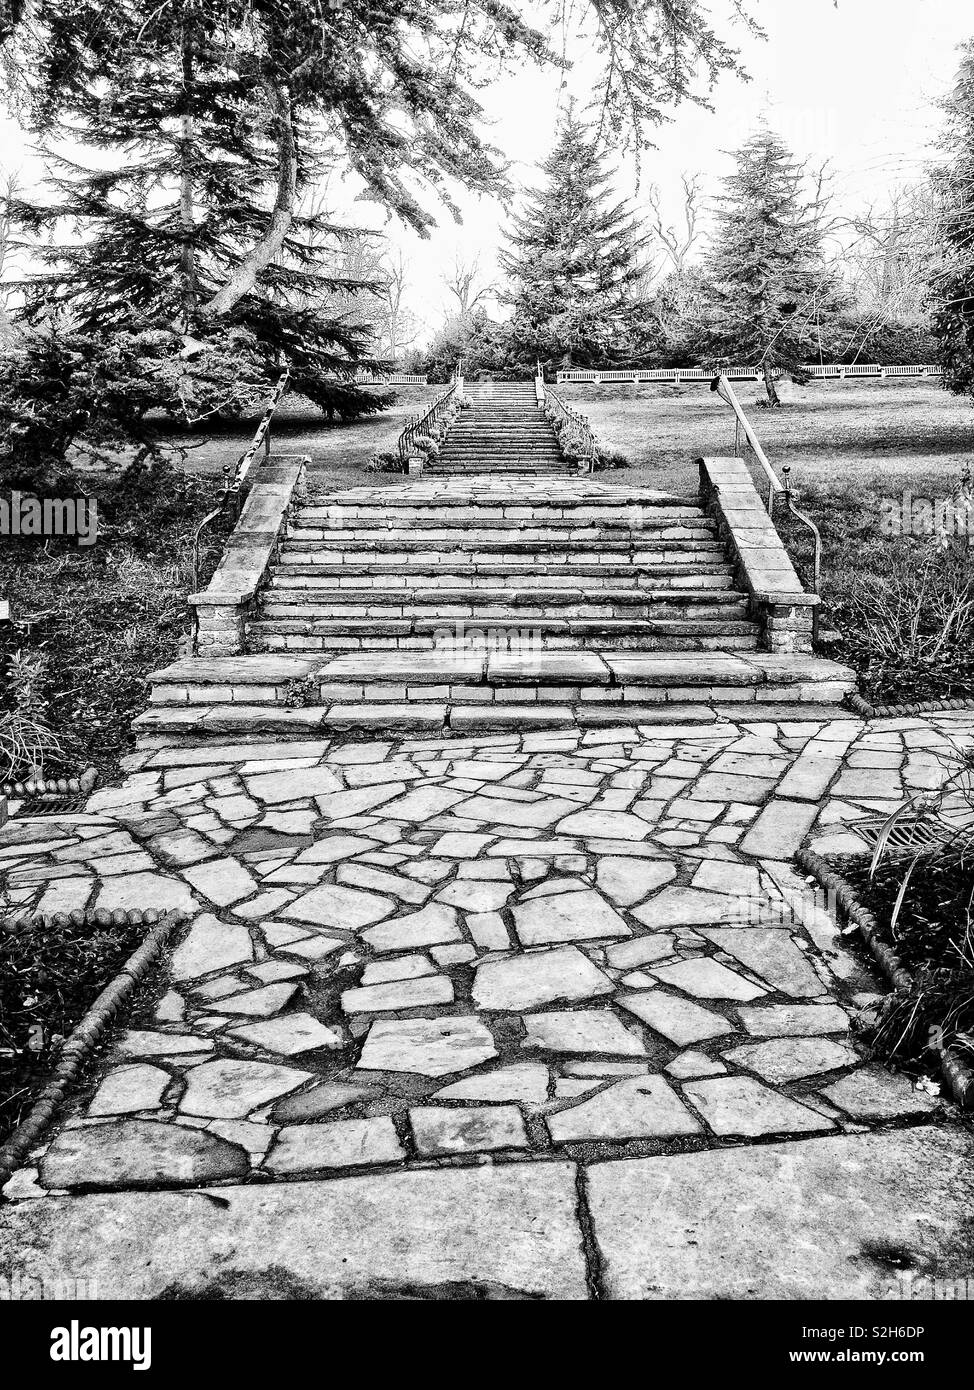 Tiered stone steps leading to benches in a London park - Stock Image